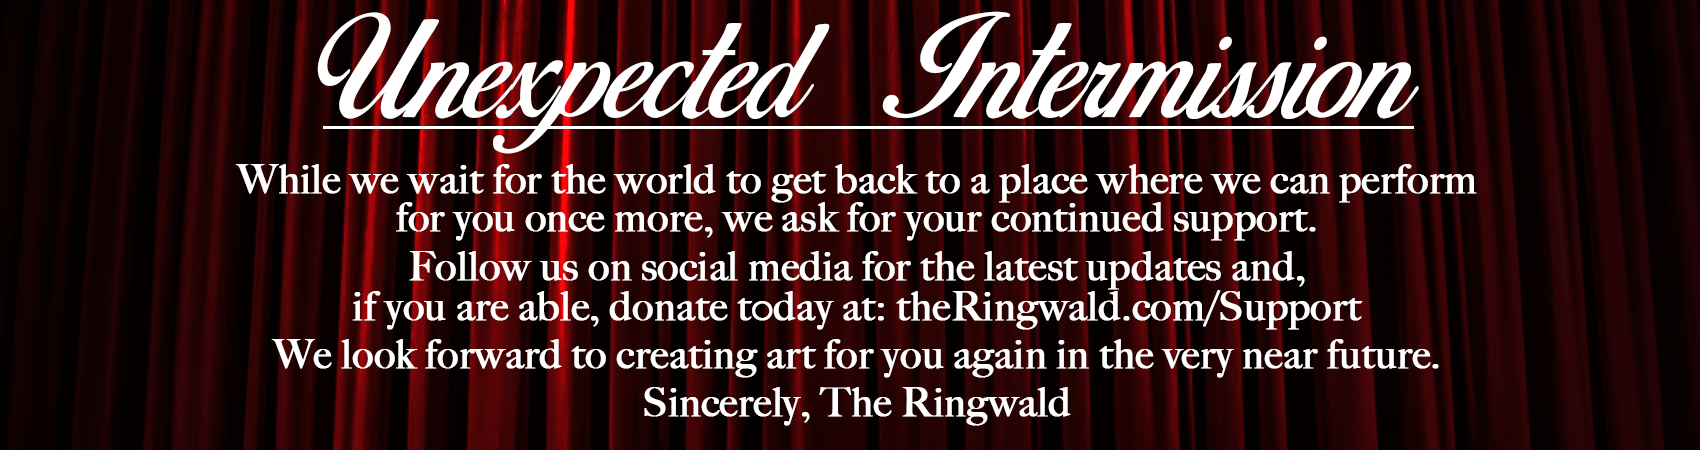 INTERMISSION-WEBSITE-BANNER.png